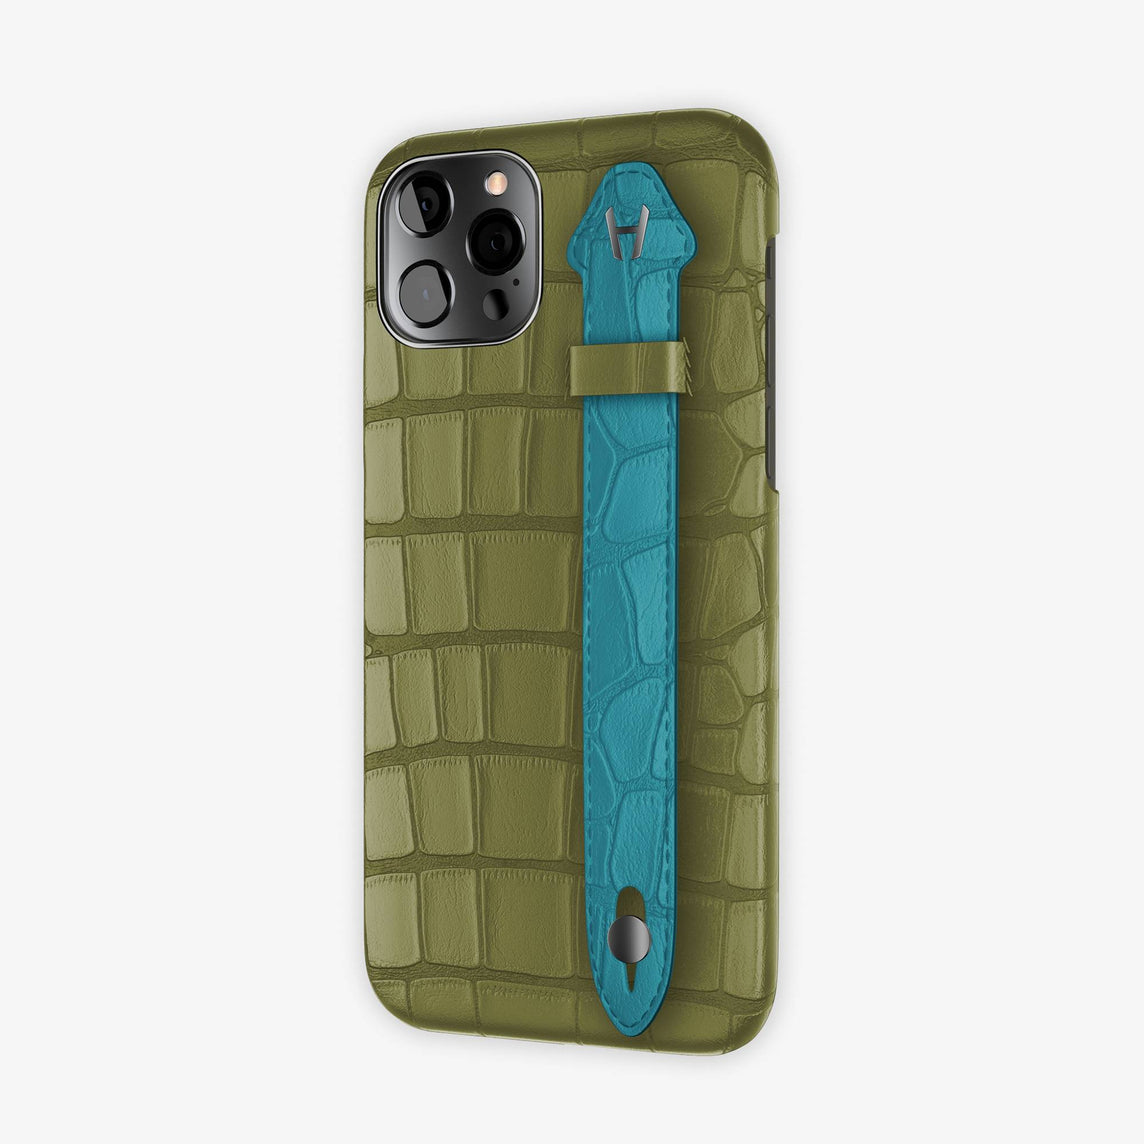 Alligator Side Finger Case  iPhone 12 & iPhone 12 Pro | Khaki/Blue Teal -Black